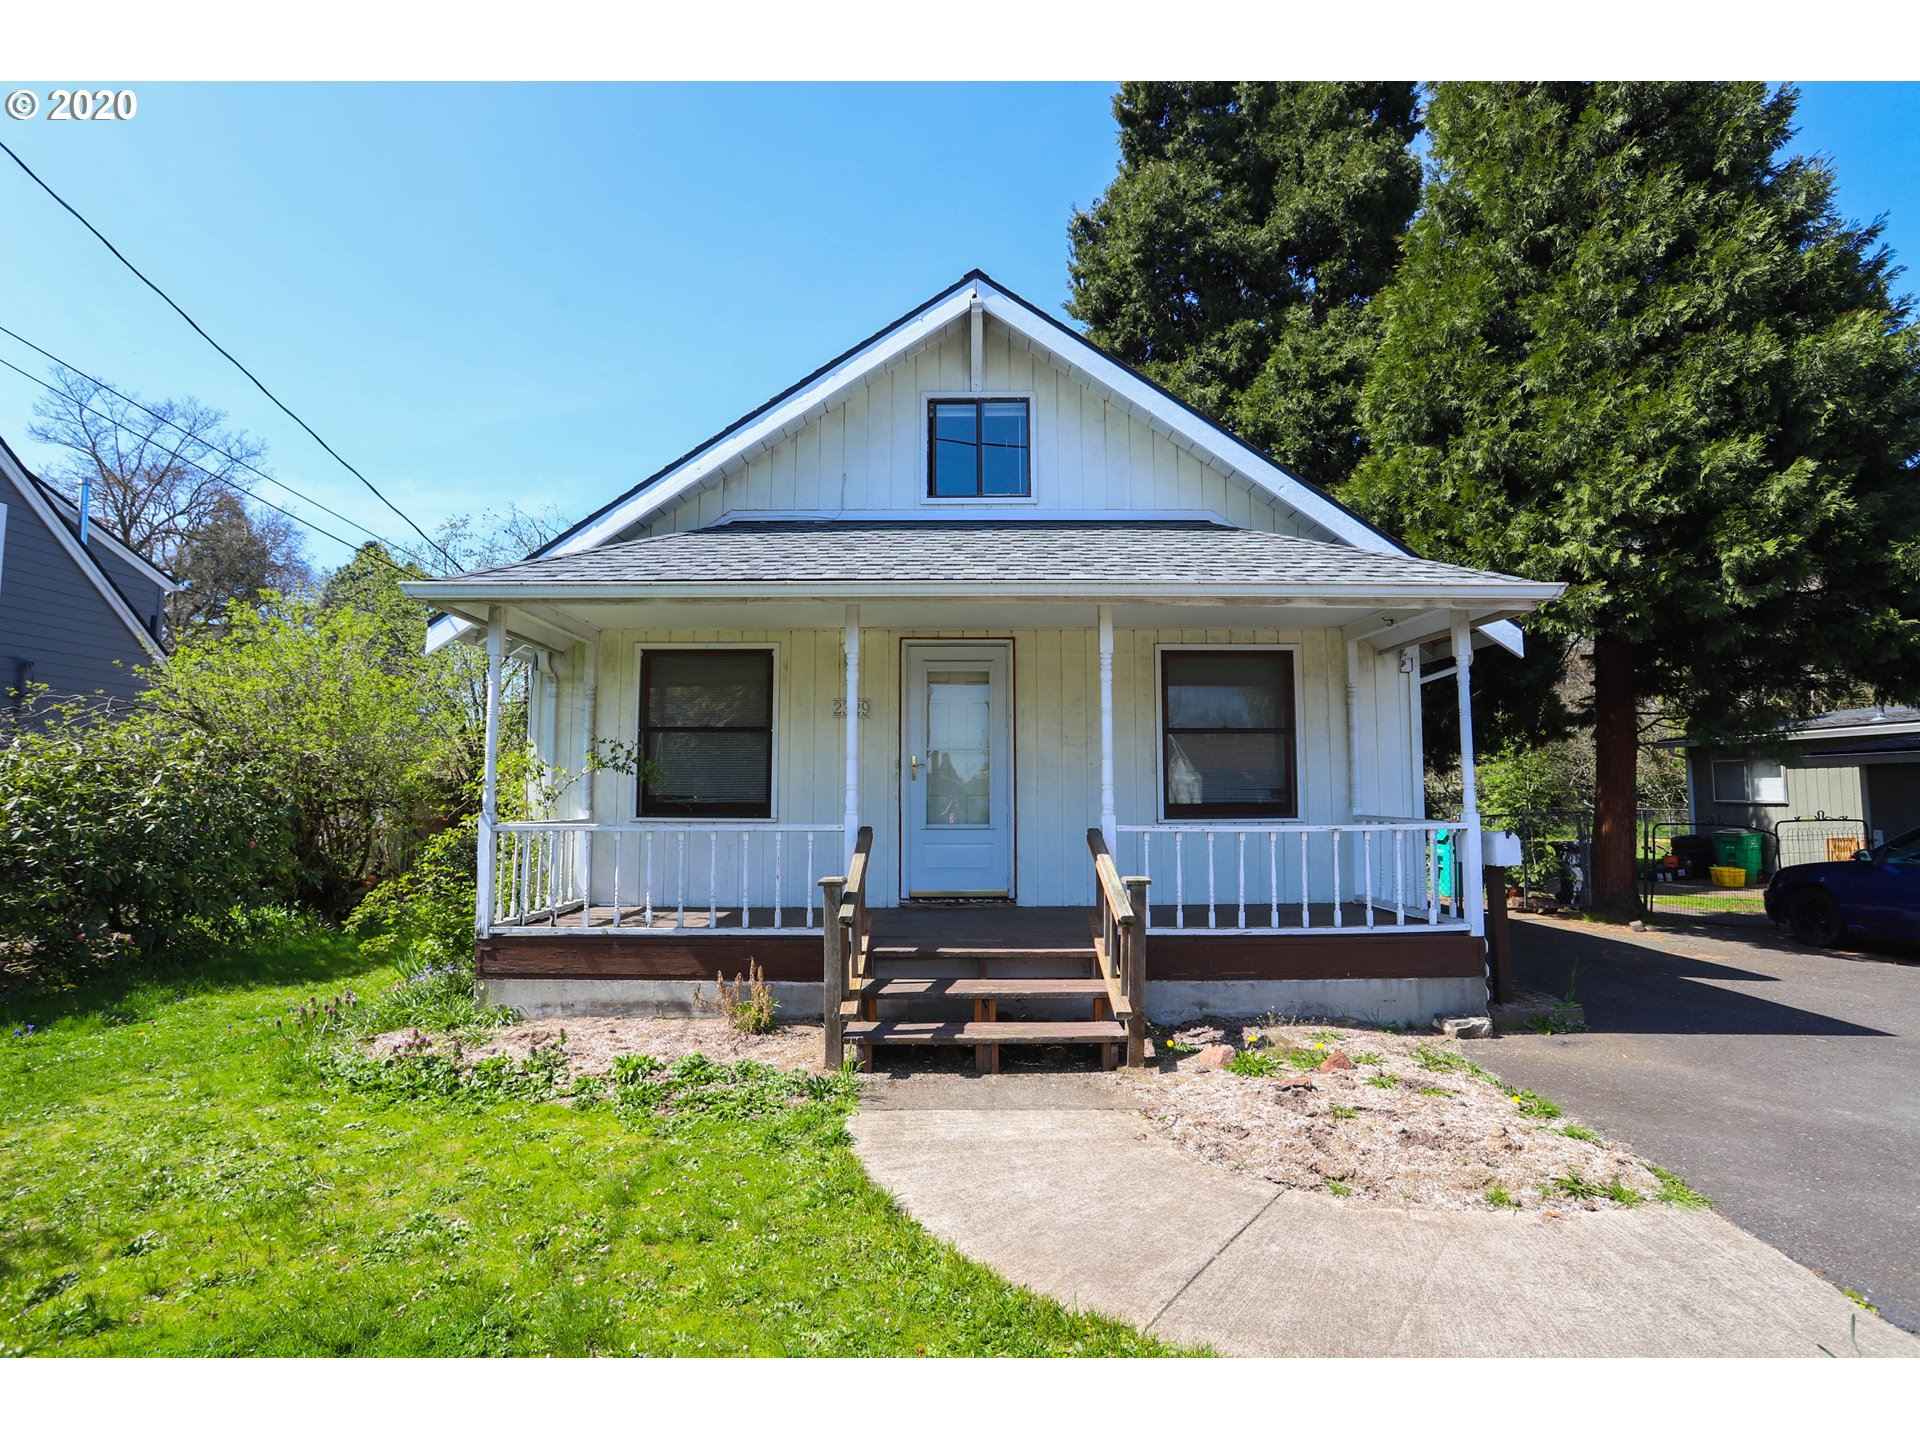 2329 SE 92ND AVE, Portland, OR 97216 - MLS#: 20353718